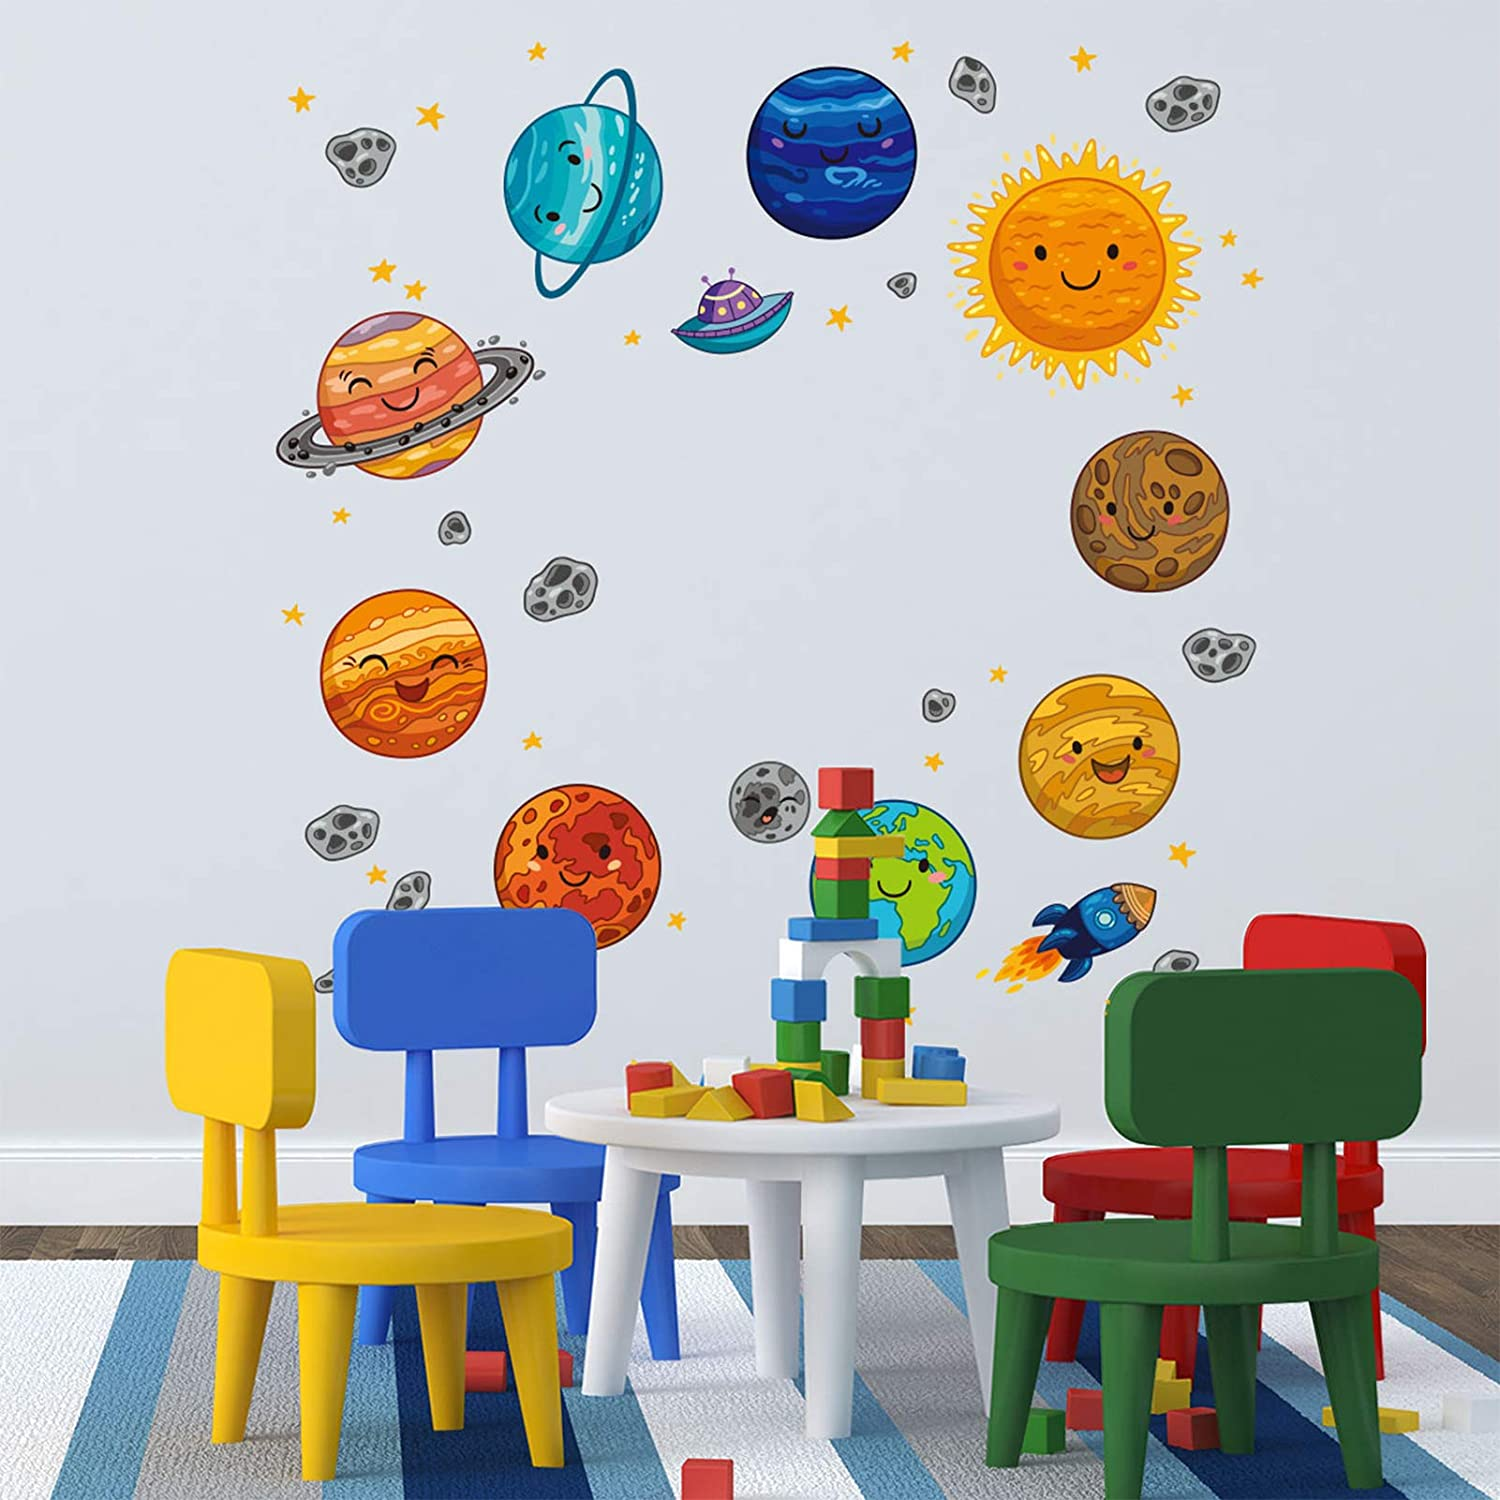 Cartoon Outer Space Wall Decals, HOLENGS Peel and Stick Removable Solar System Wall Stickers, Spaceship Stars and Planet Wall Decor for Kids Boys Explorer Living Room Bedroom Nursery Home Decoration